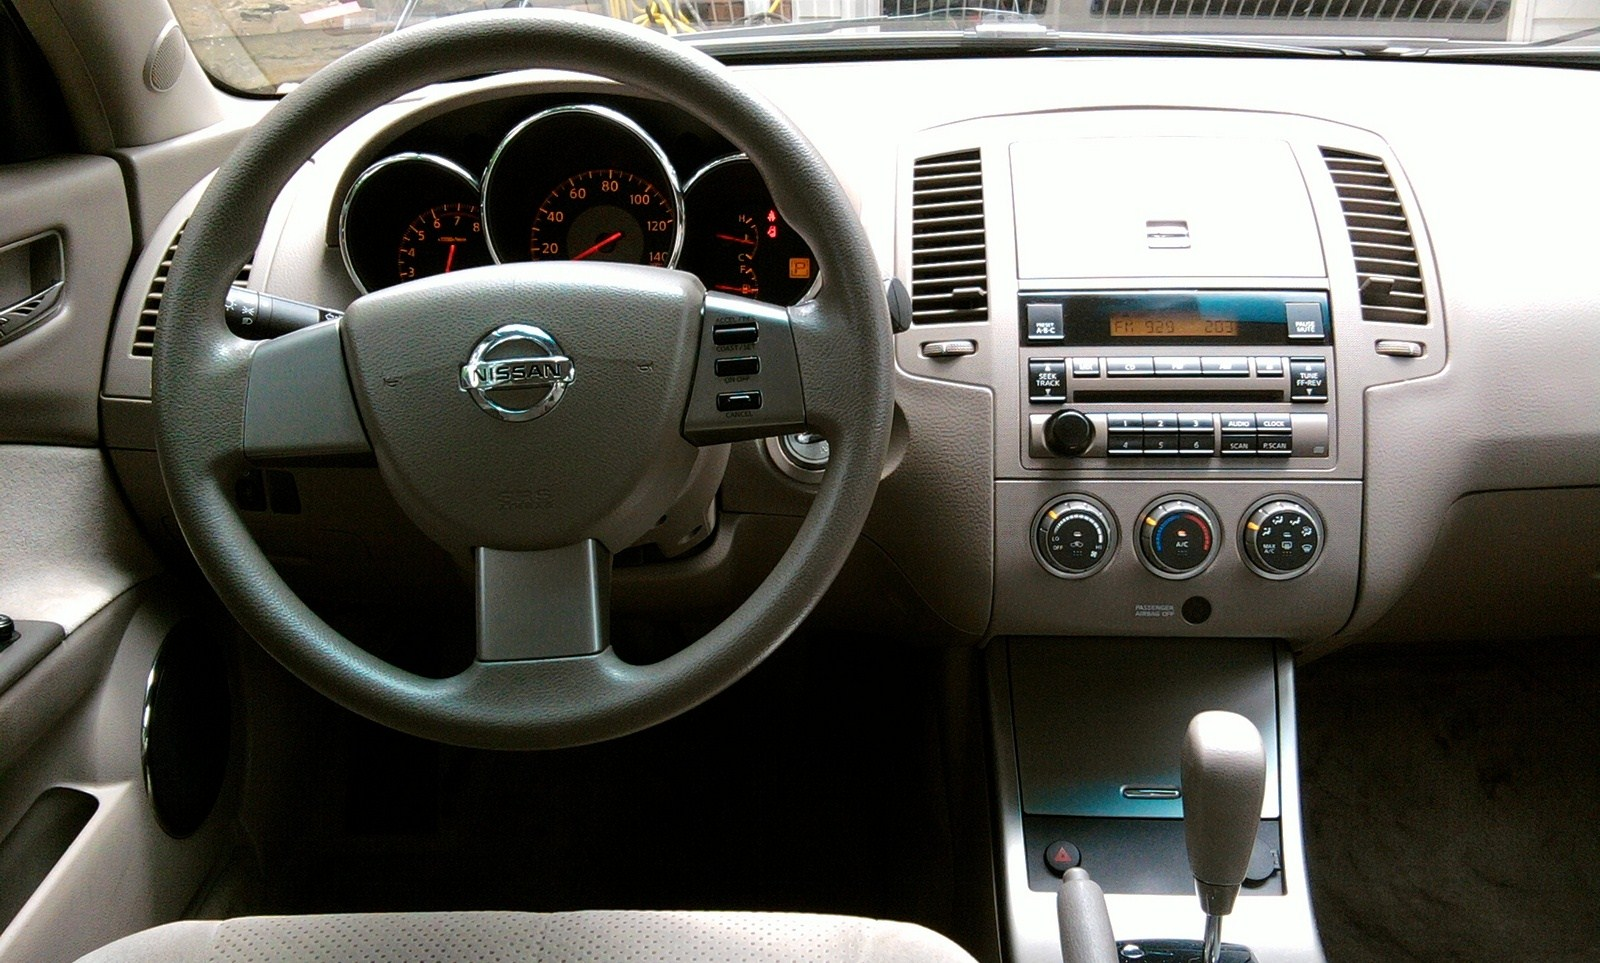 nissan altima 2 5 s images car hd wallpapers prices review. Black Bedroom Furniture Sets. Home Design Ideas